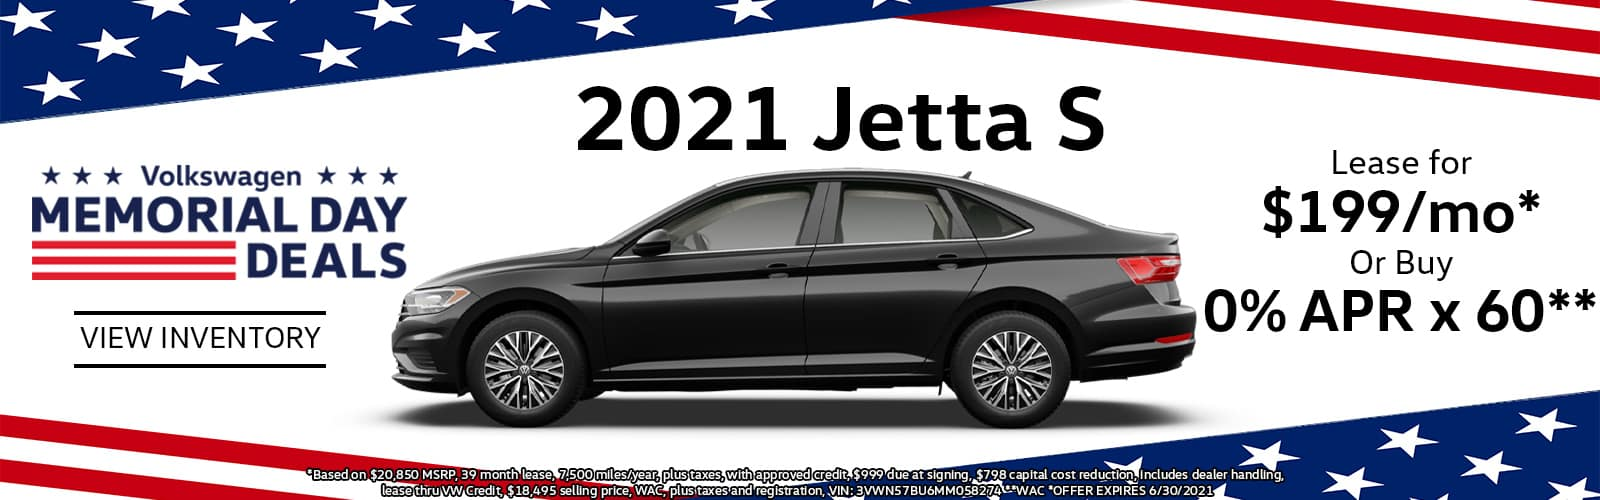 2021 VW Jetta Lease or Buy Special